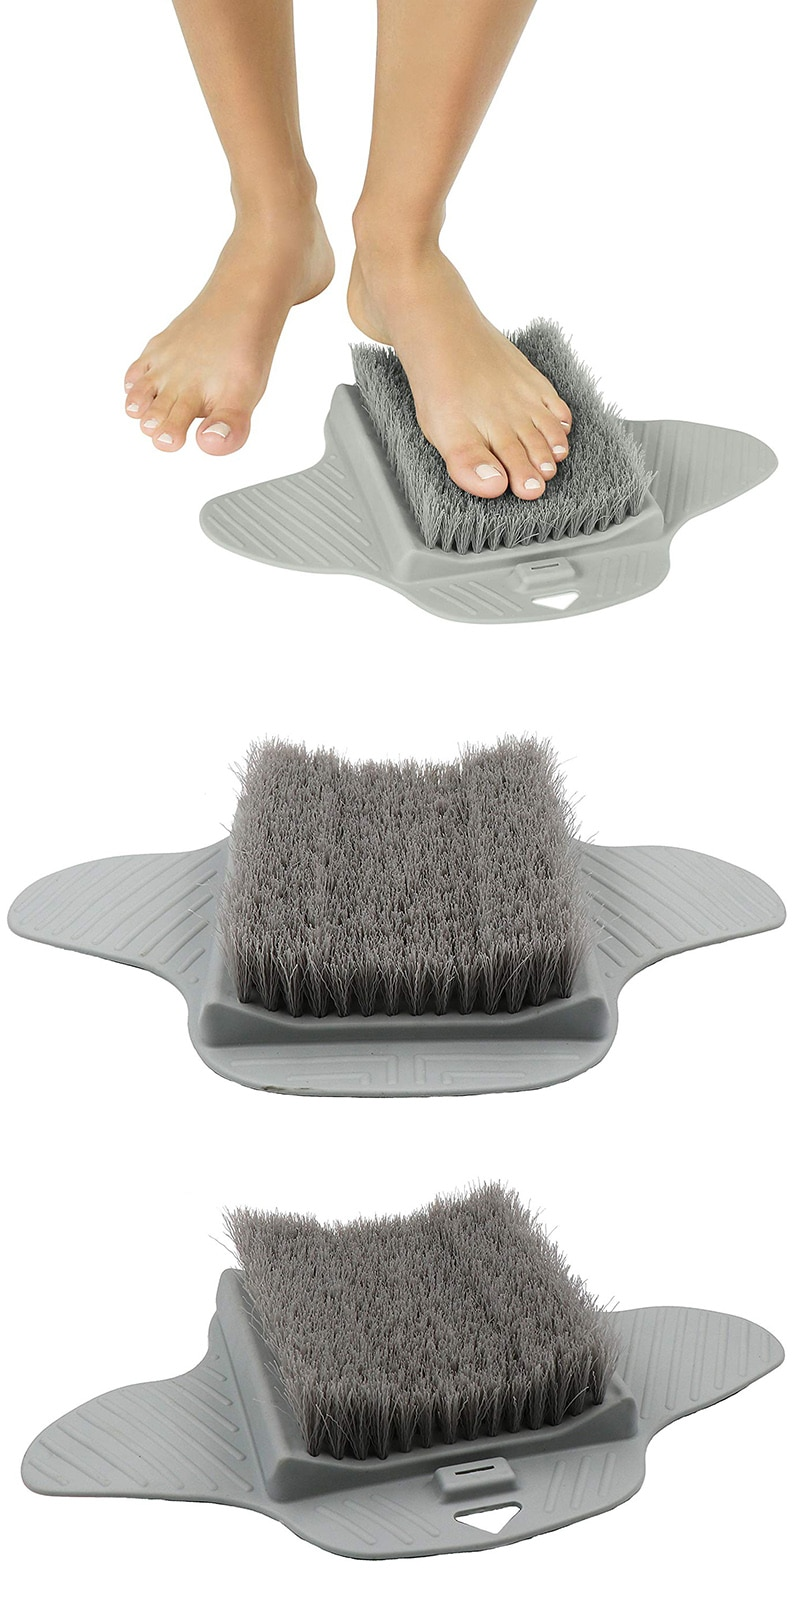 UNTIOR Silicone Foot Brush Massage Slippers Bath Shoes Brush Pumice Stone Foot Remove Dead Skin Shower Foot Scrubber with Sucker